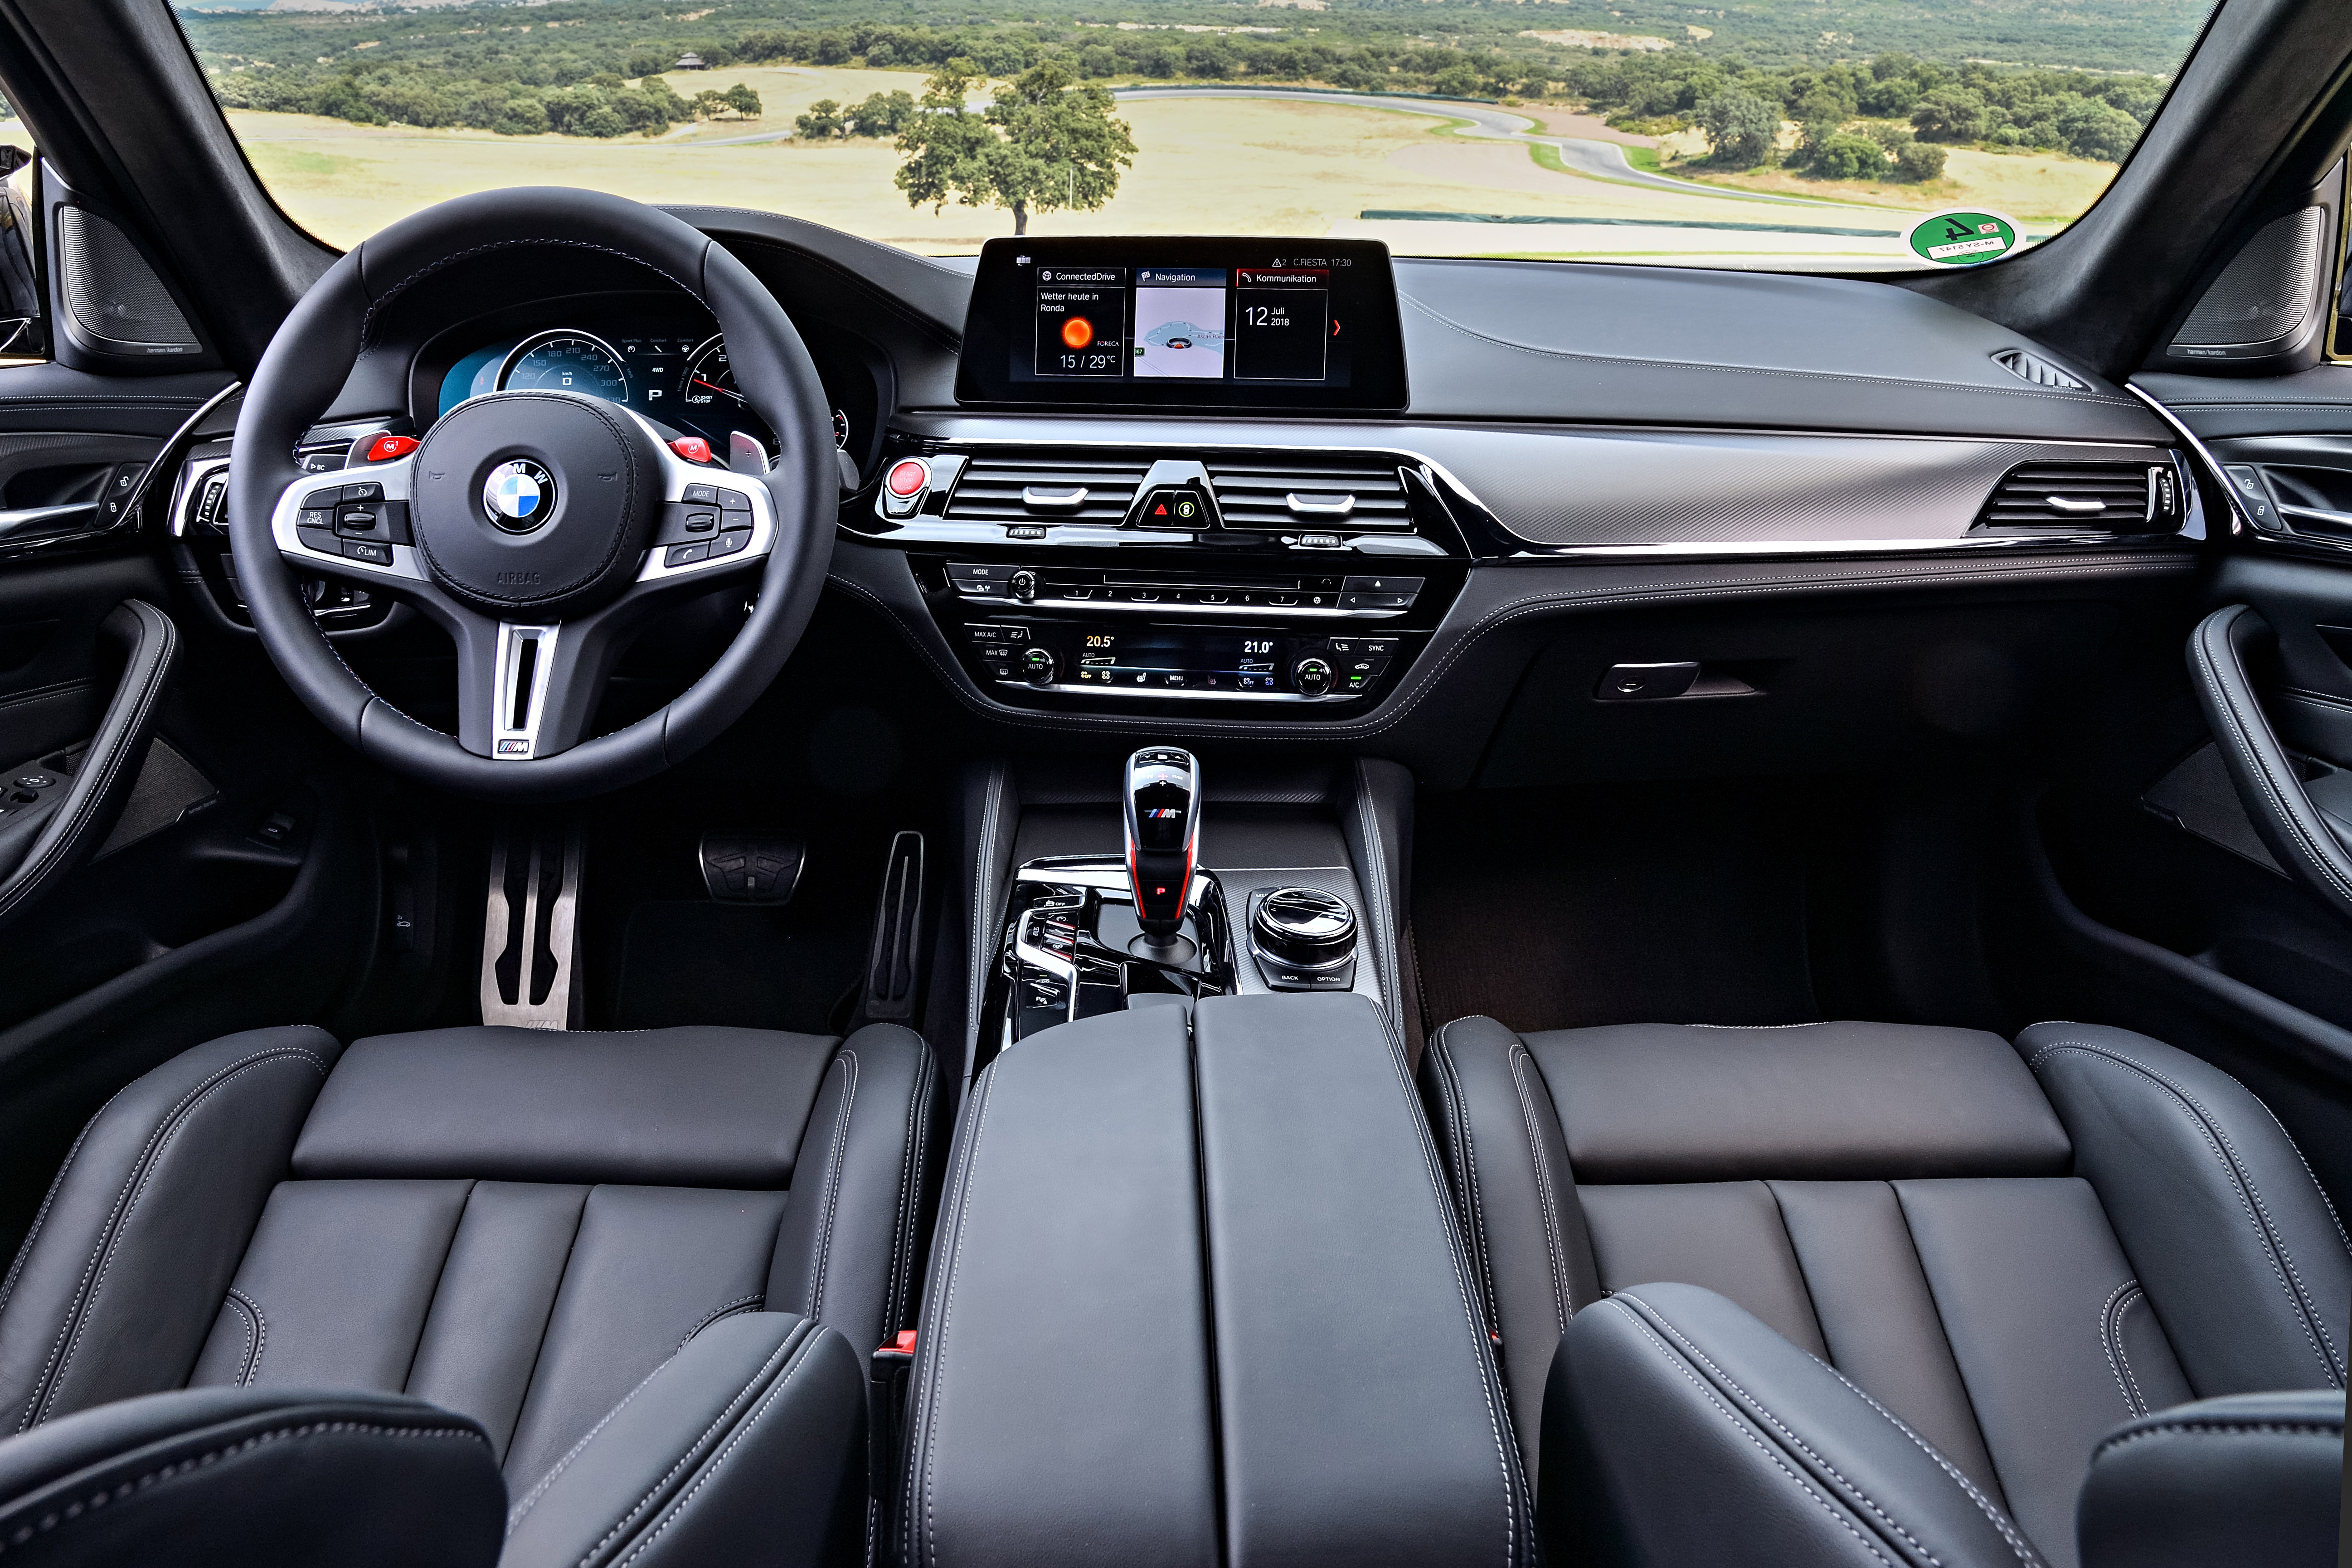 The interior remains largely unchanged over the standard M5